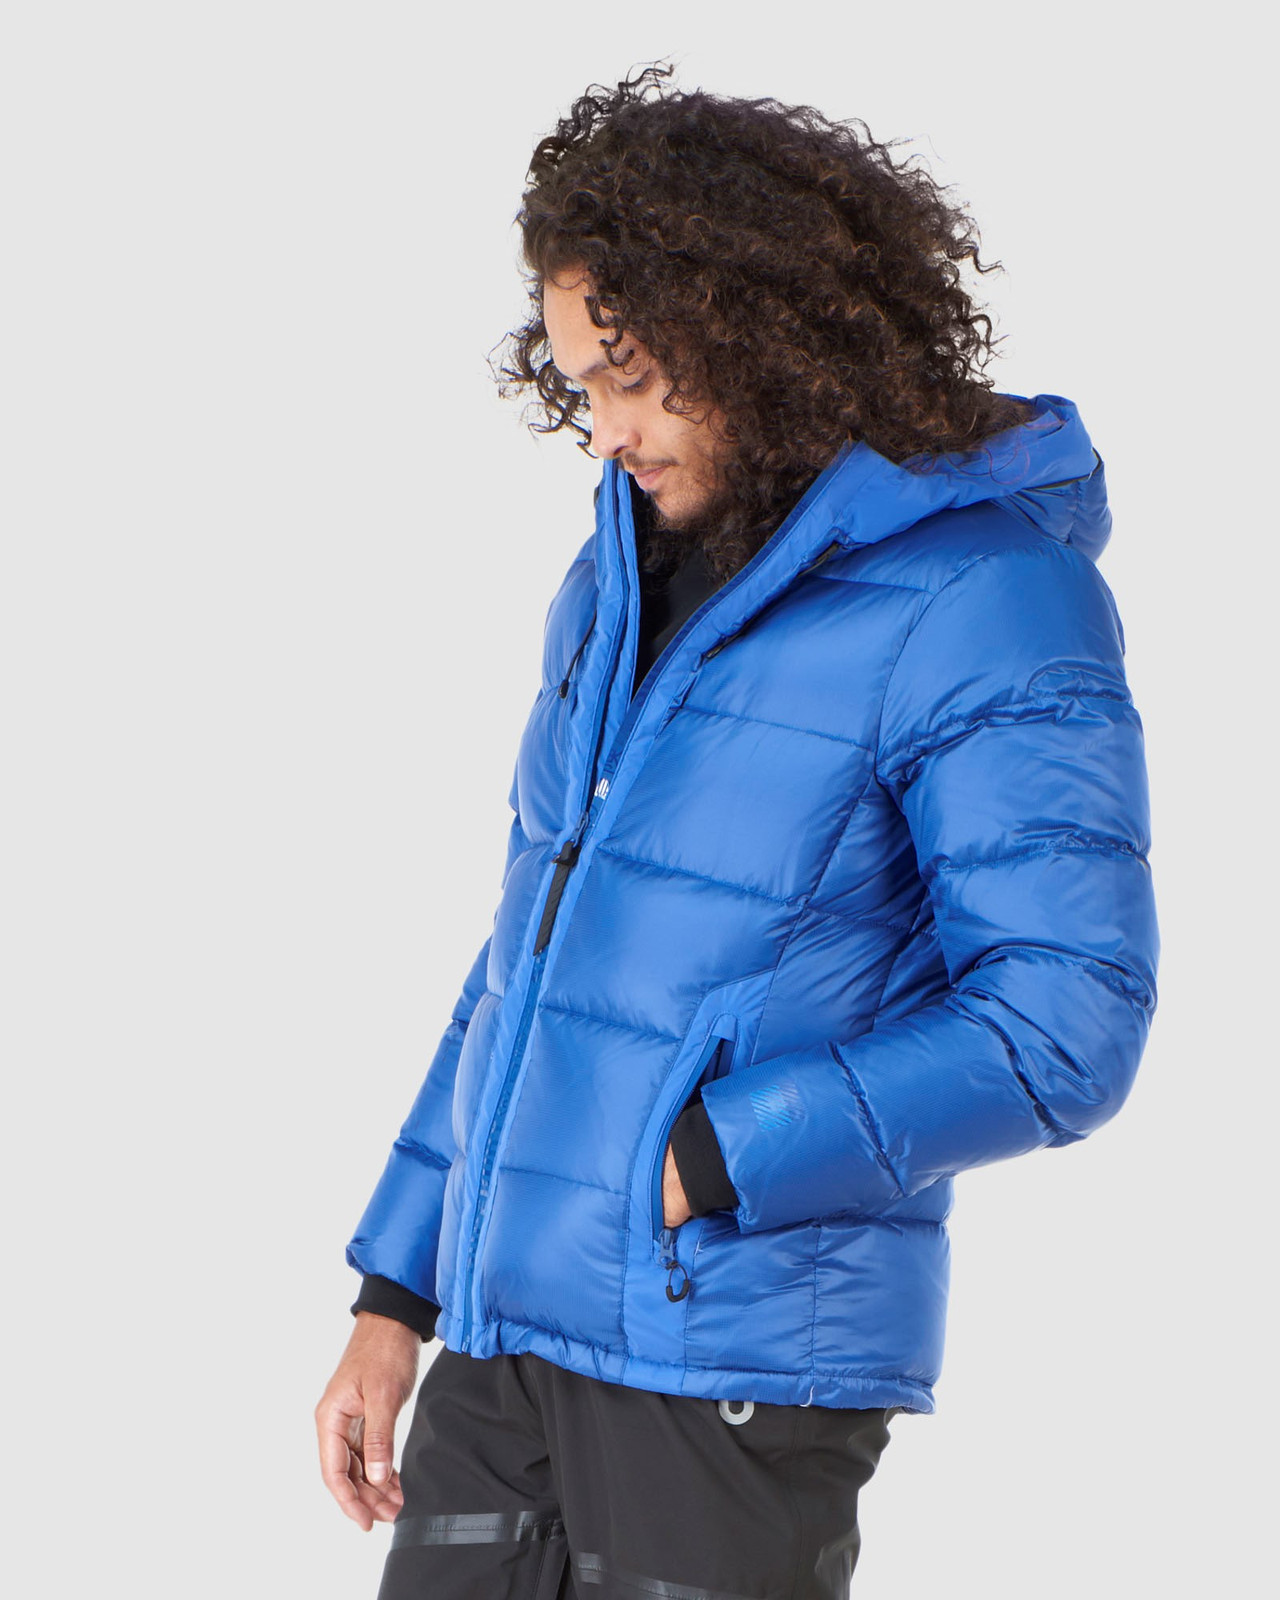 Superdry Mens MOUNTAIN PRO RACER PUFFER Blue Green Snow Jackets 2